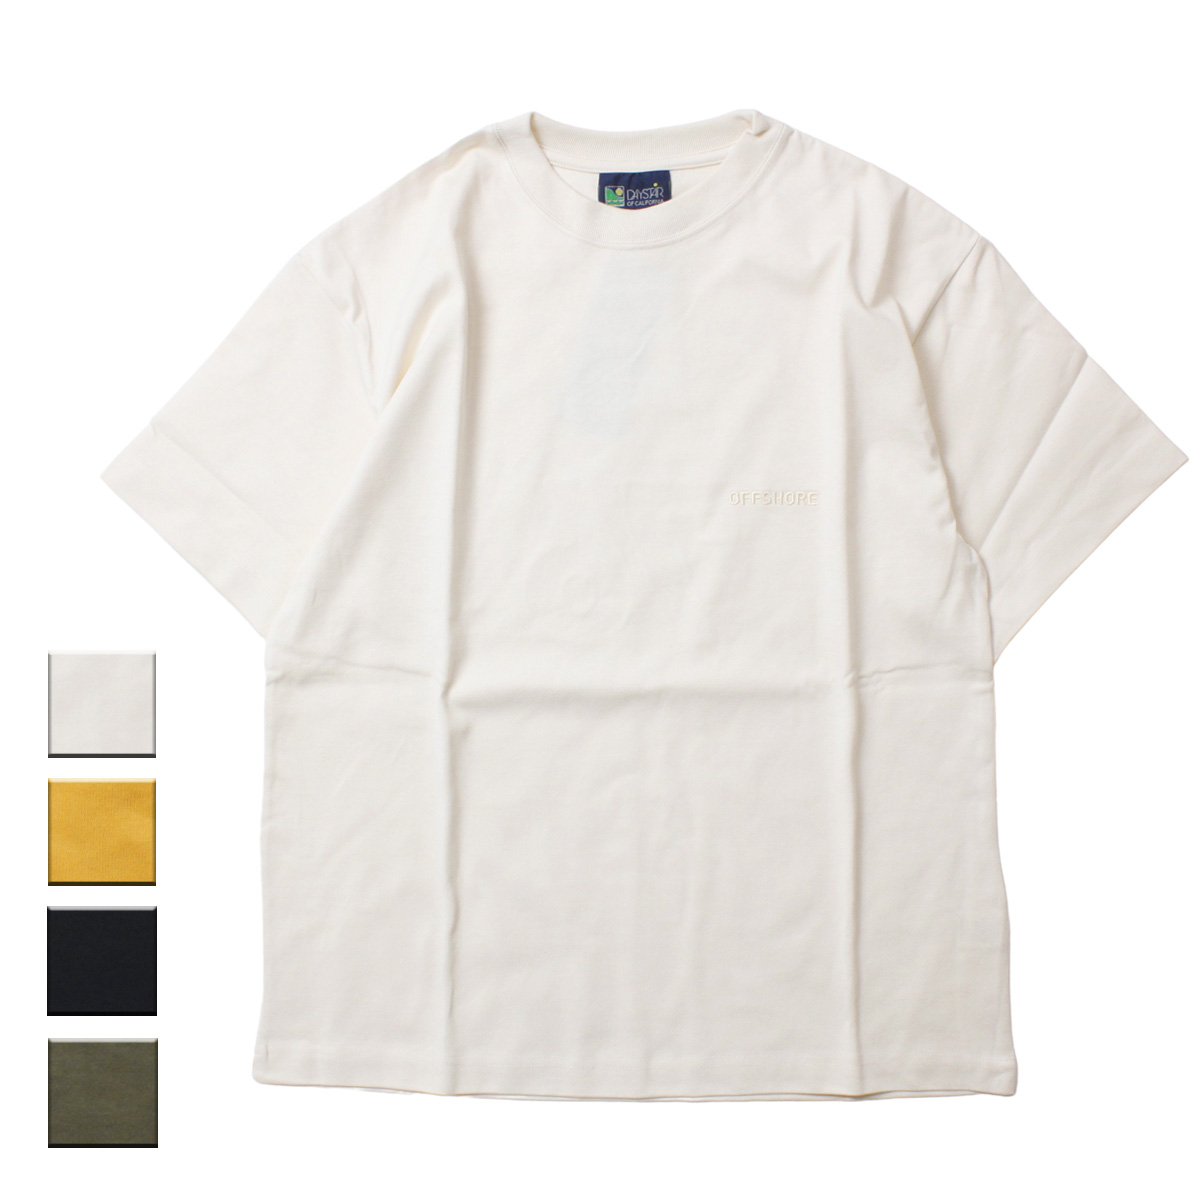 OFFSHORE オフショア DST PATO NUMBERING TEE